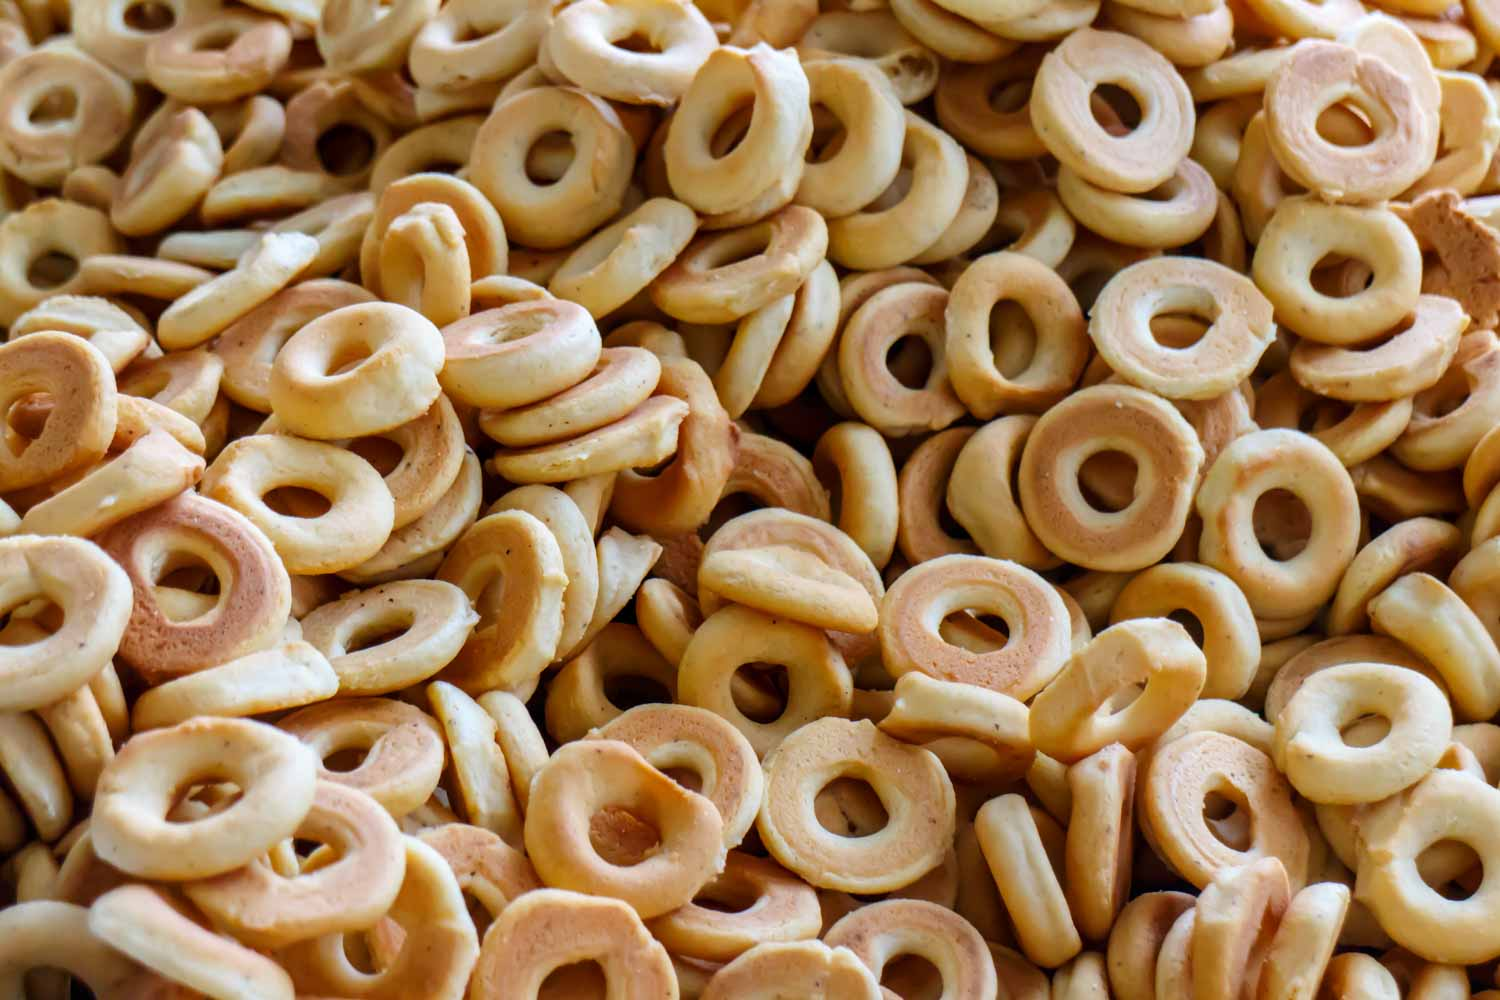 pile of typical handmade rosquillas, typical Honduran deserts that look like donuts or bagels.